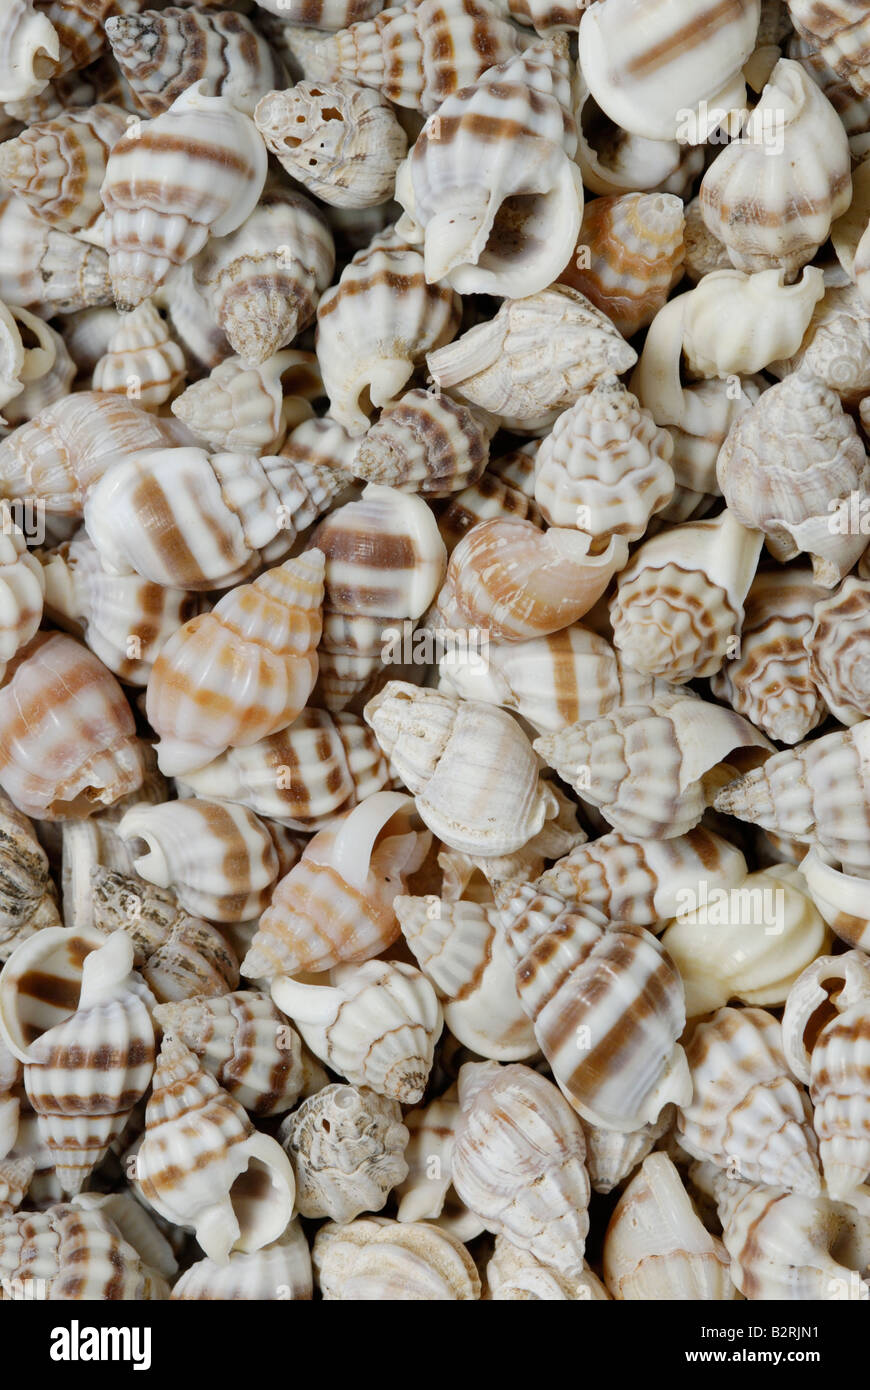 A collection of small gastropod shells Gastropods are single shelled mollusks - Stock Image